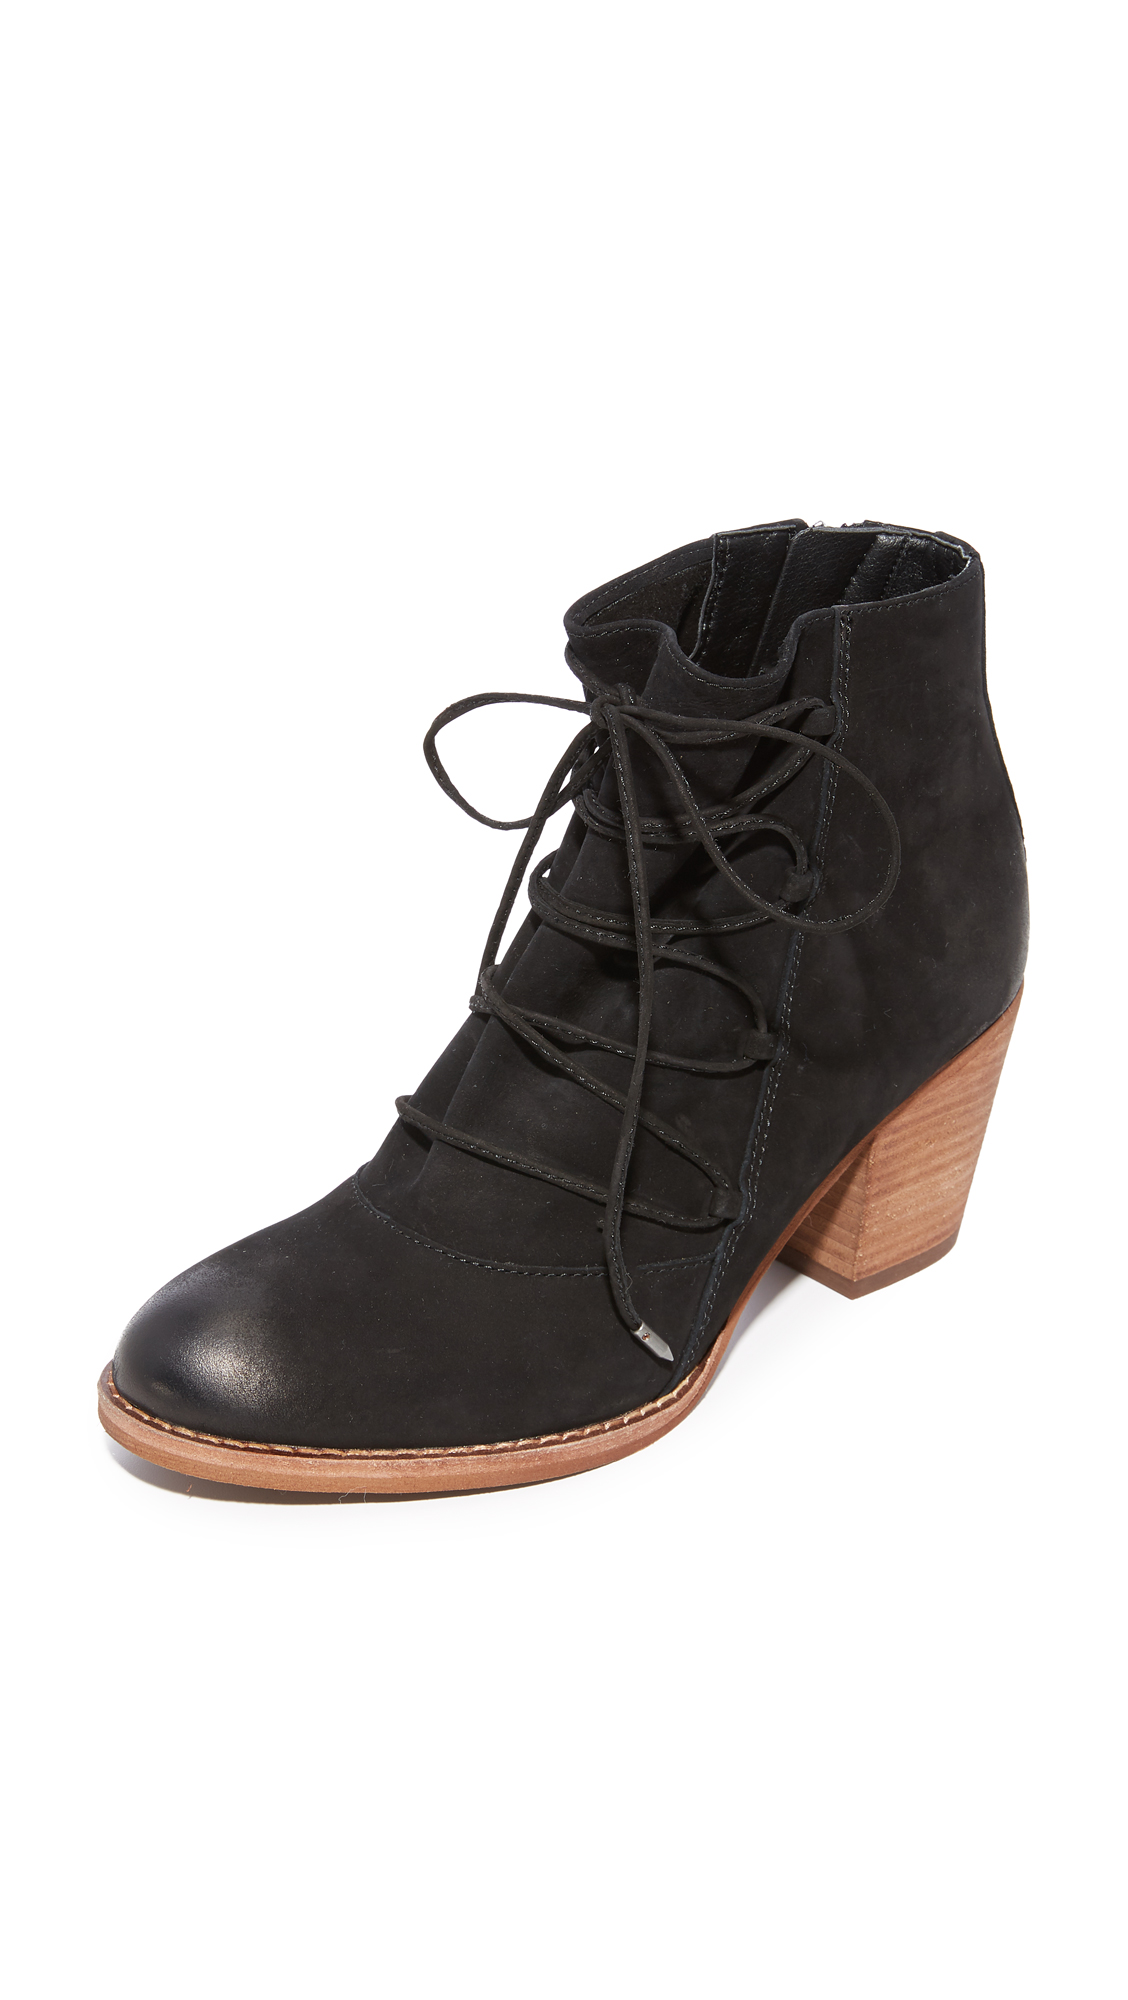 Sam Edelman Millard Booties - Black